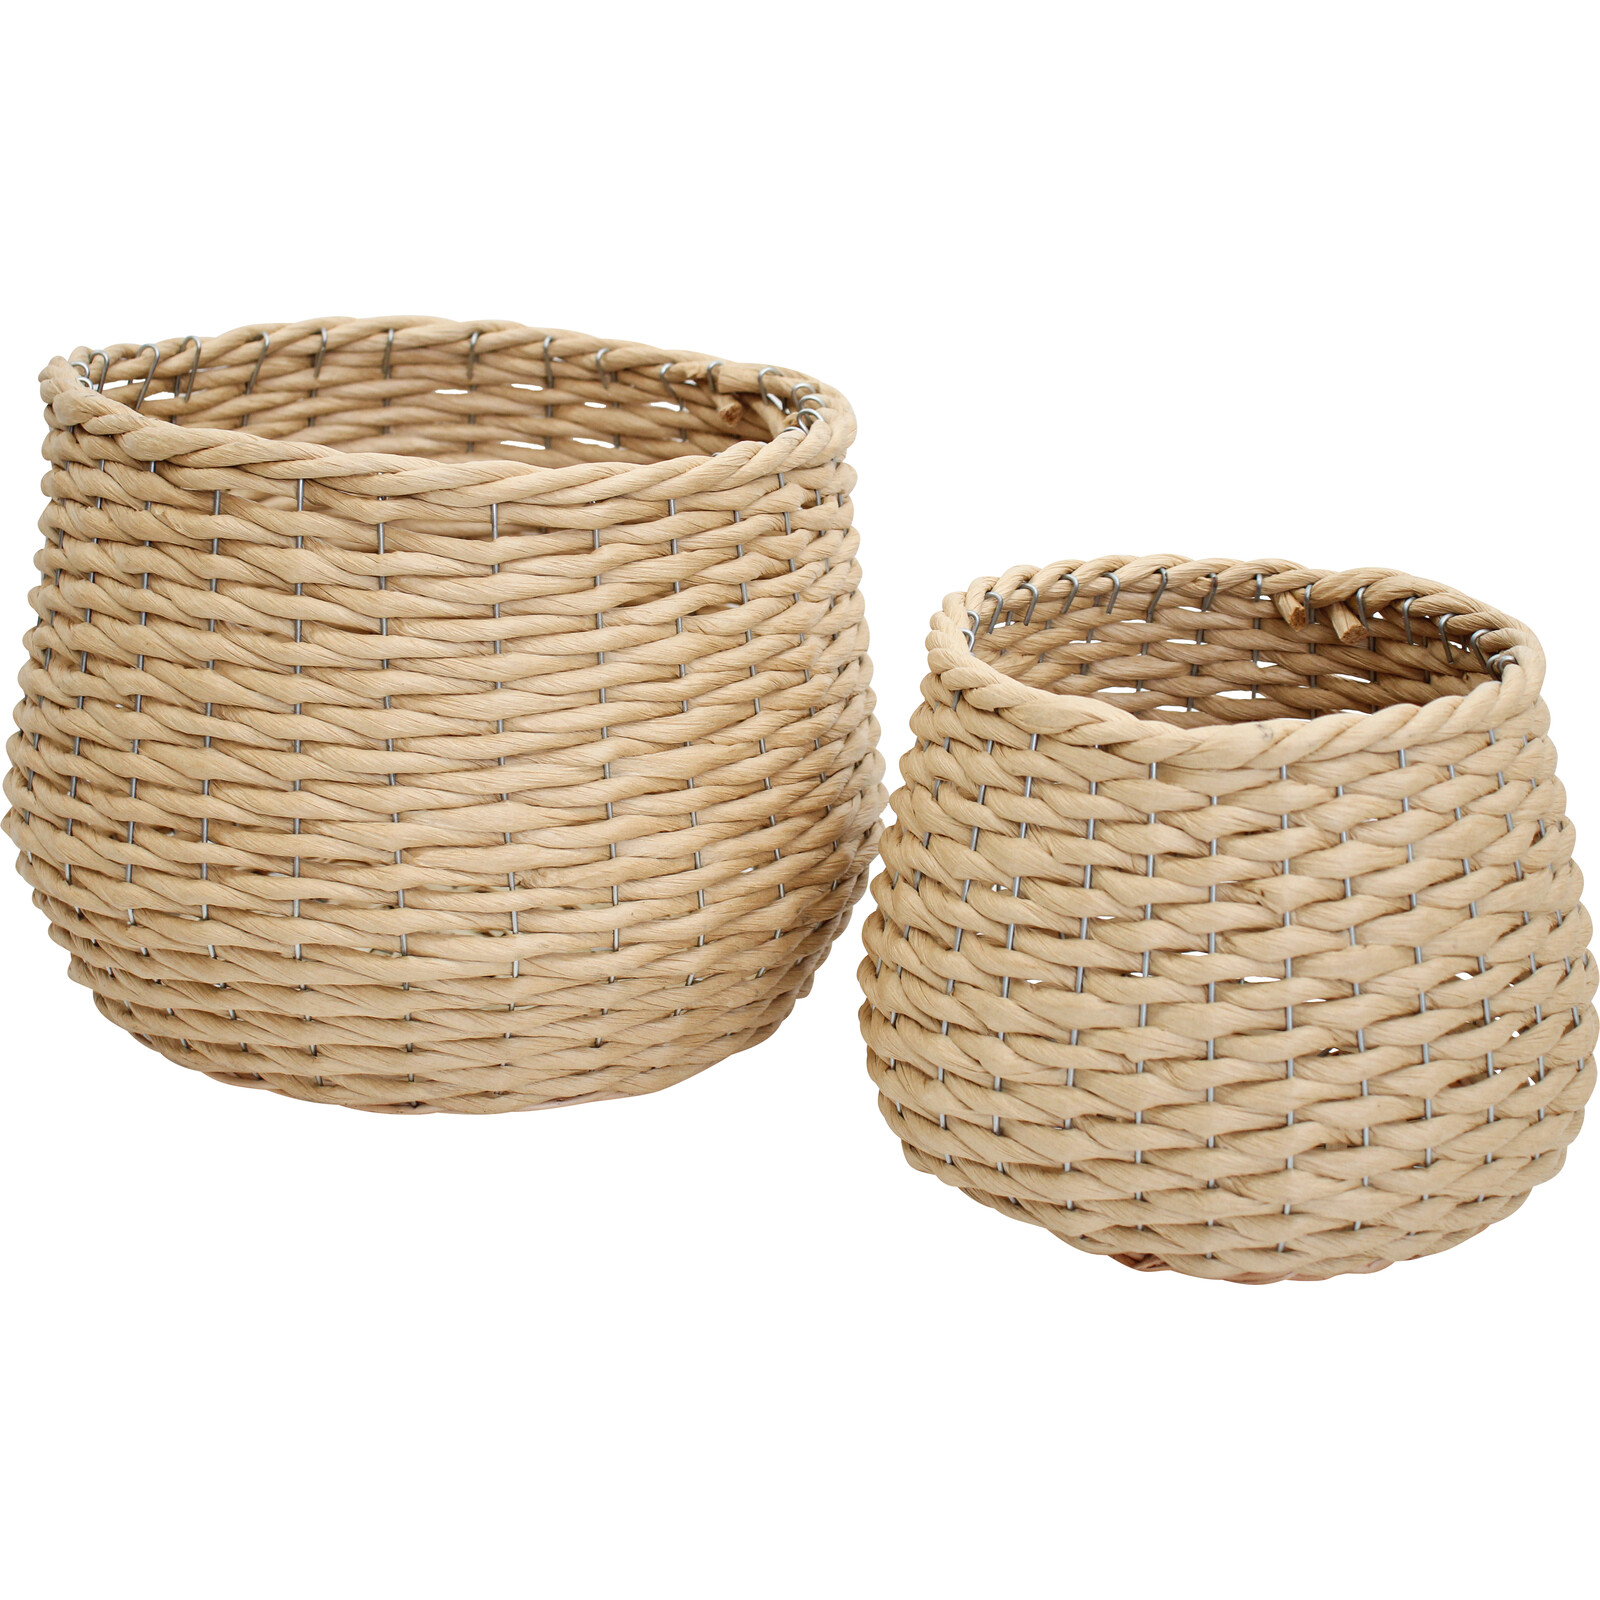 Planters S/2 Woven Ivy